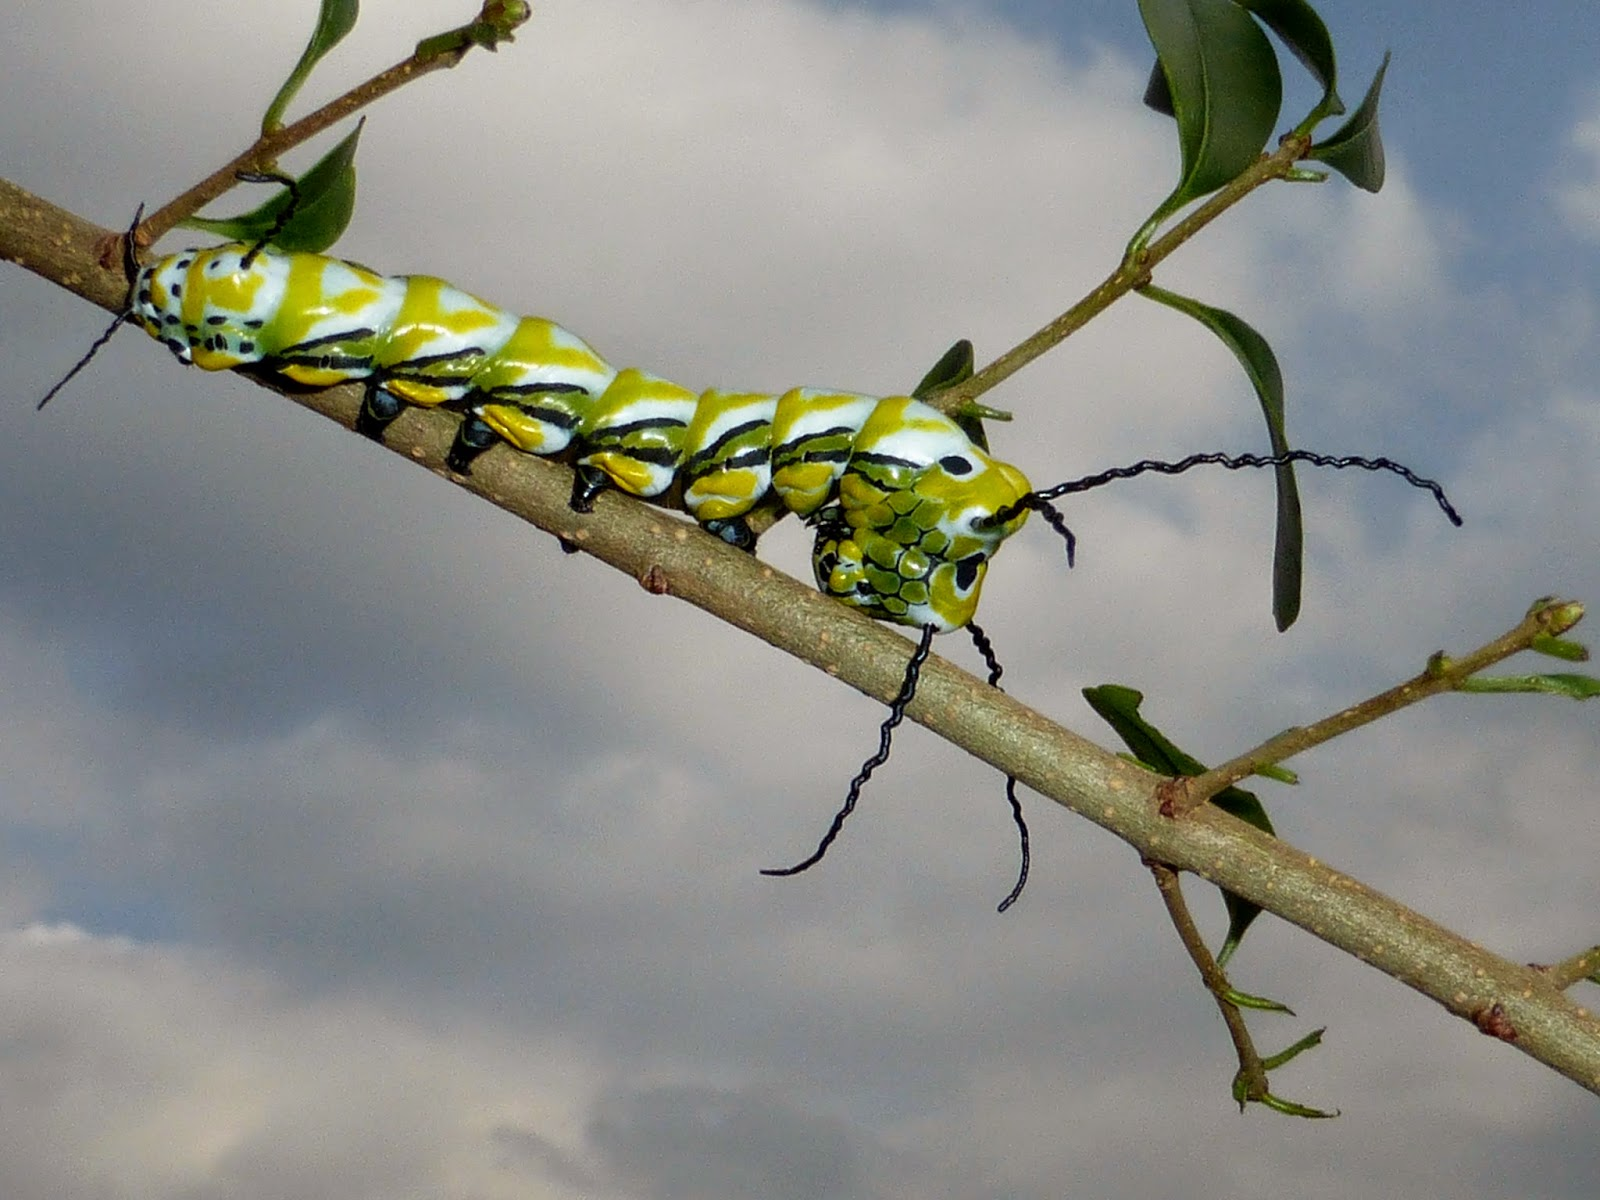 Brahmaea wallichii caterpillar